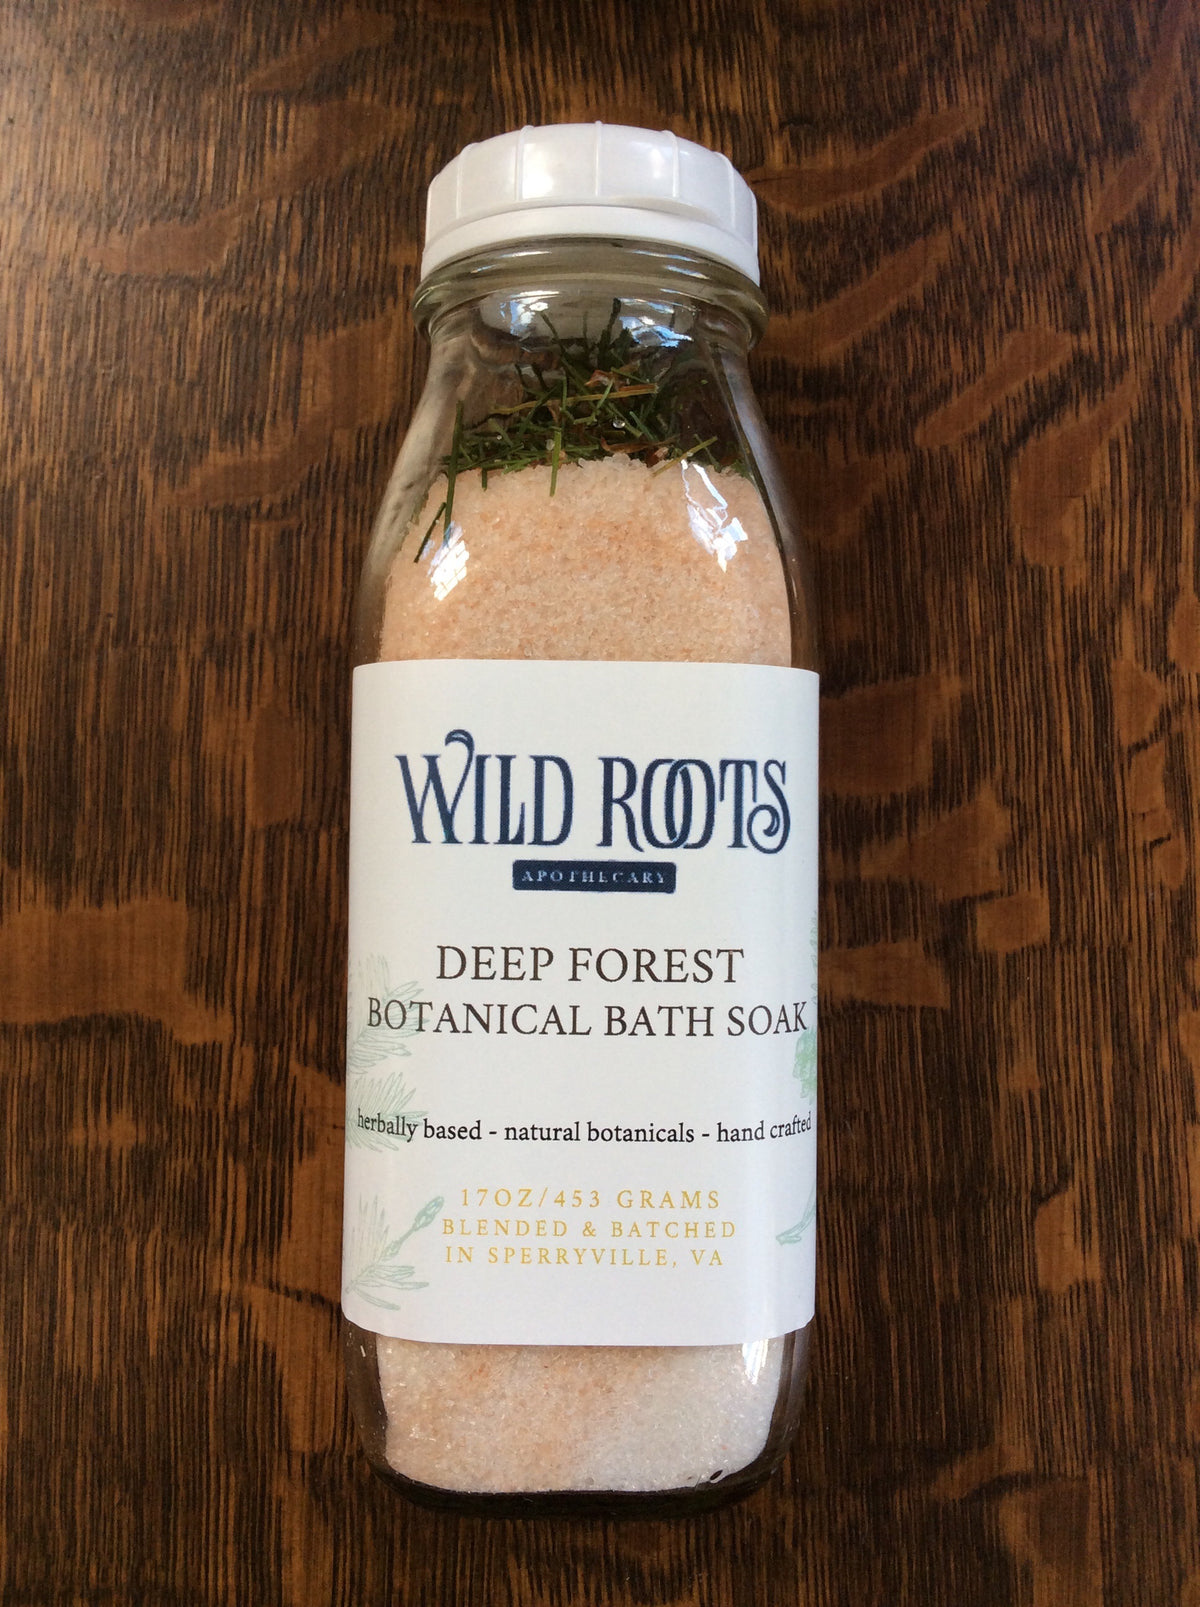 Deep Forest Botanical Bath Salt Soak